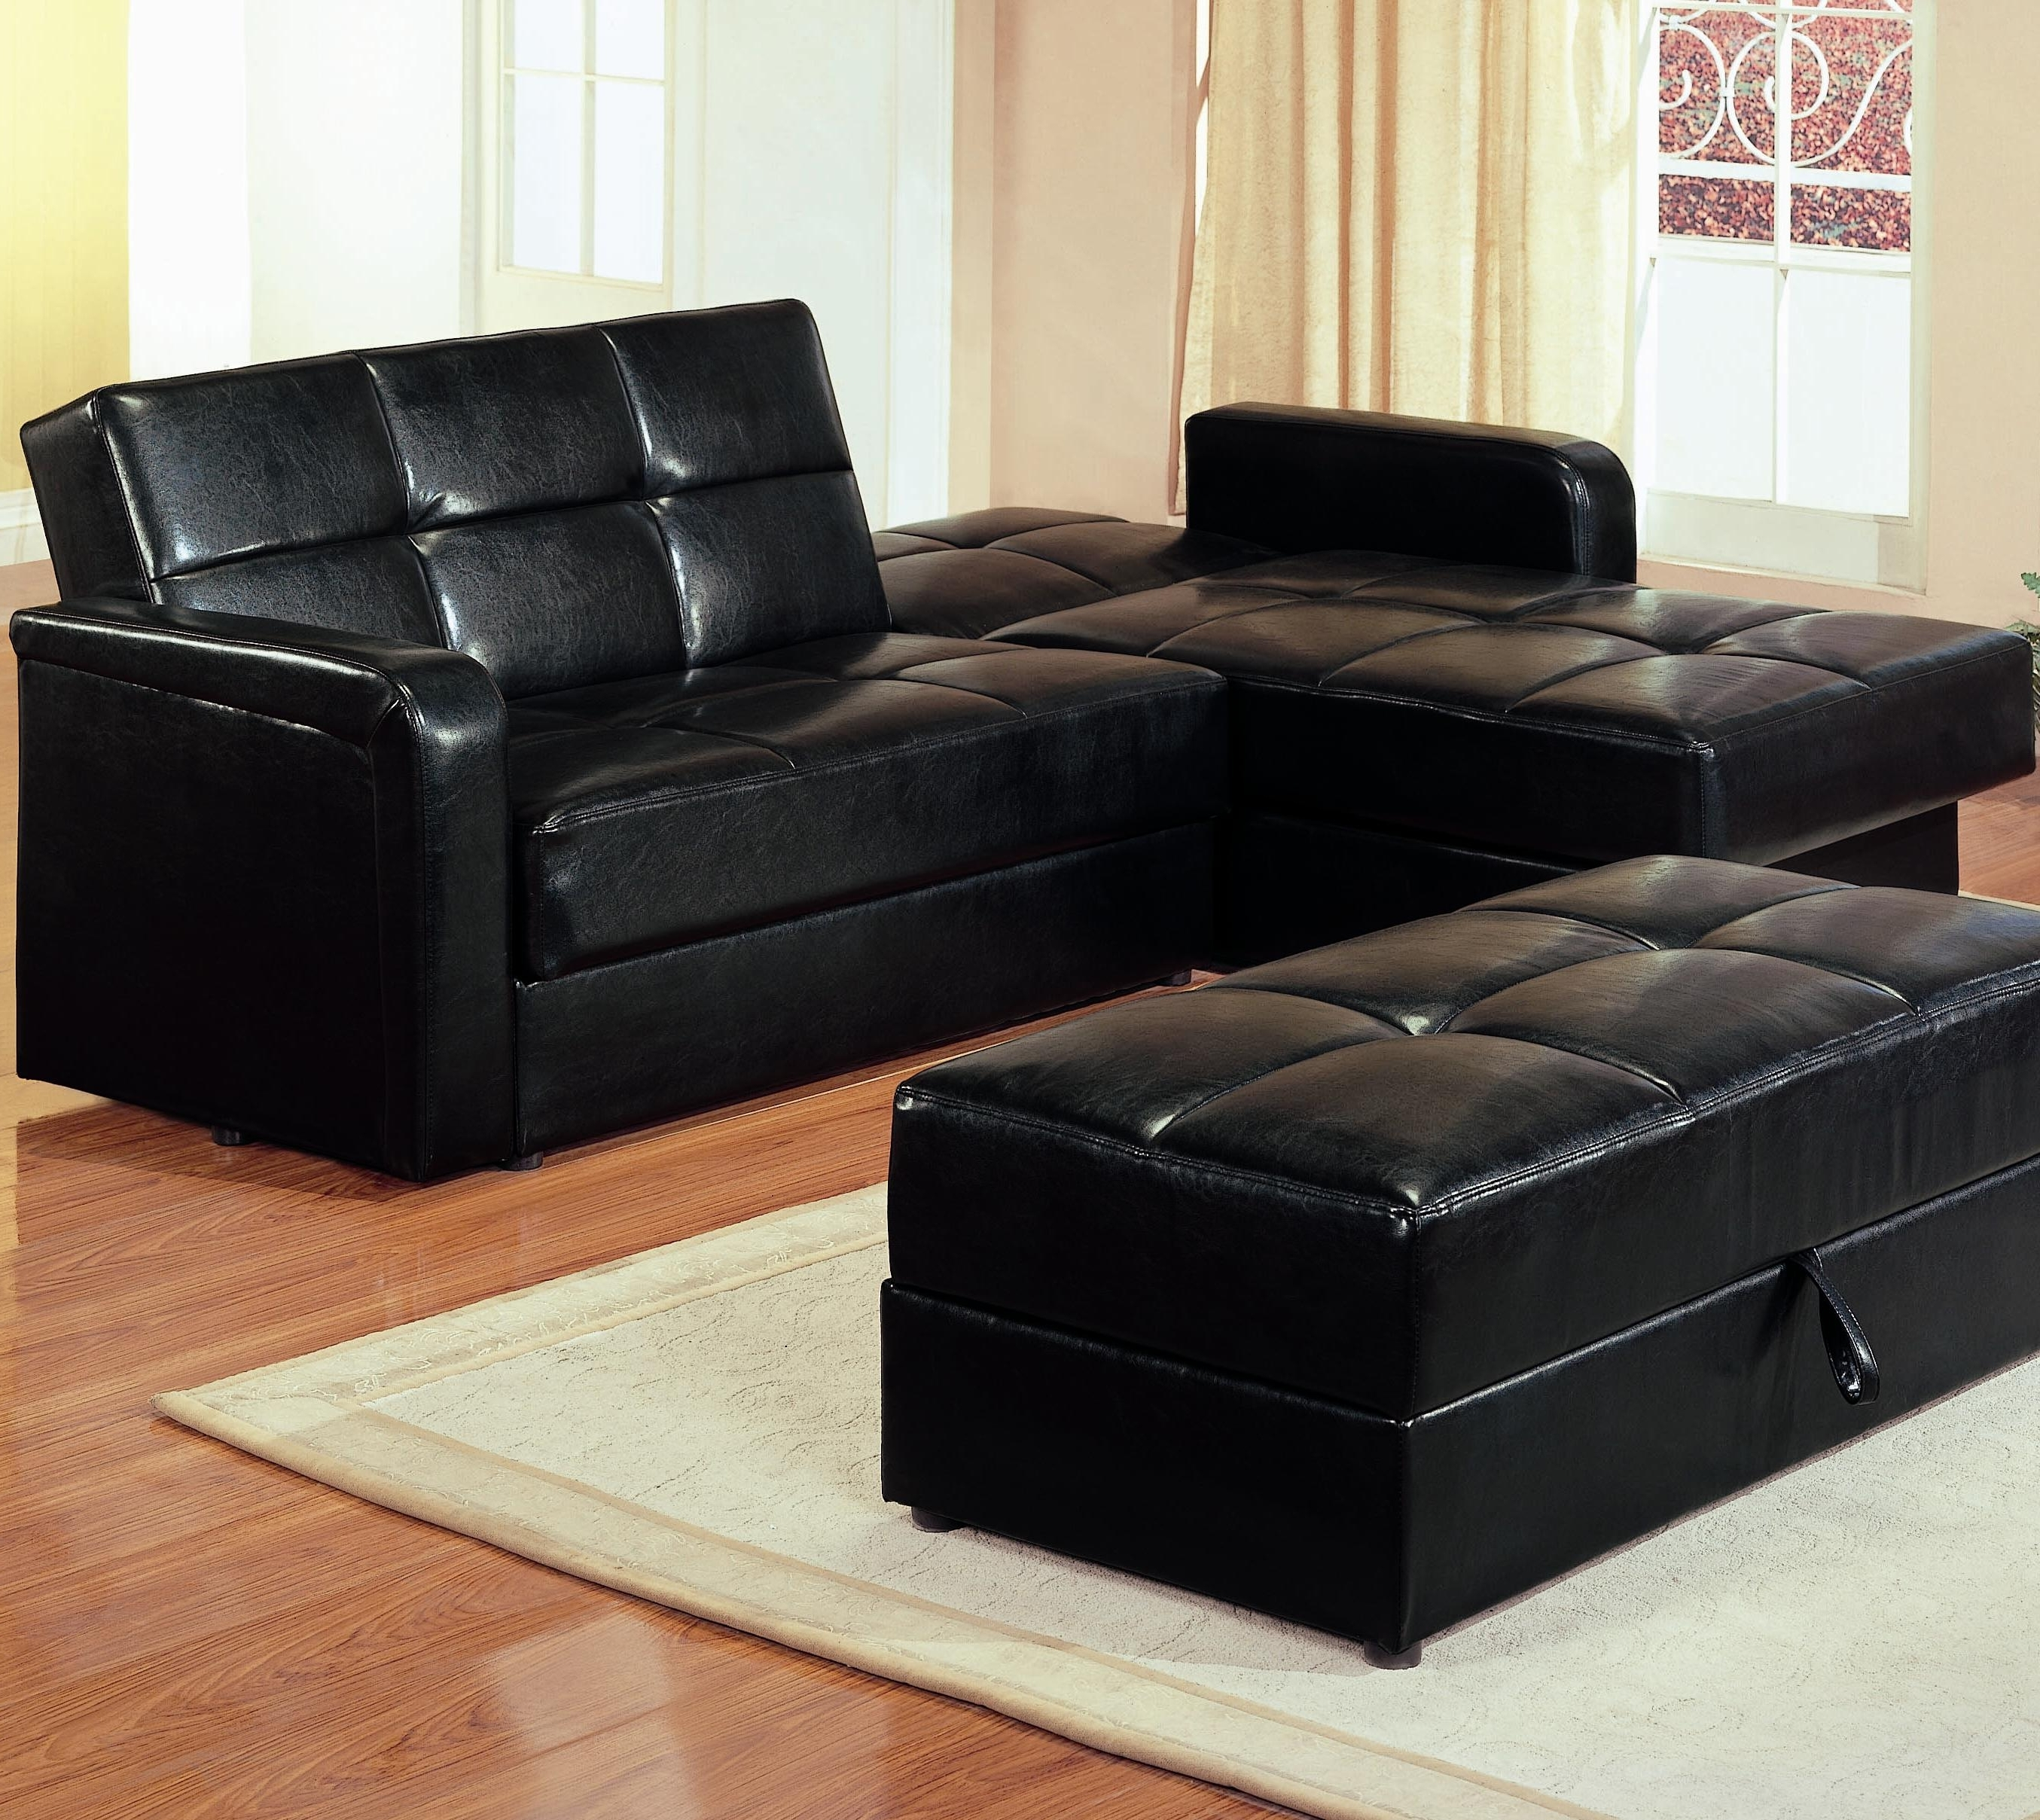 Farmers Furniture Sectional Sofas Throughout Famous Harvey Norman Sofa Bed Sofa Beds Harvey Norman Freedom Furniture (View 9 of 20)